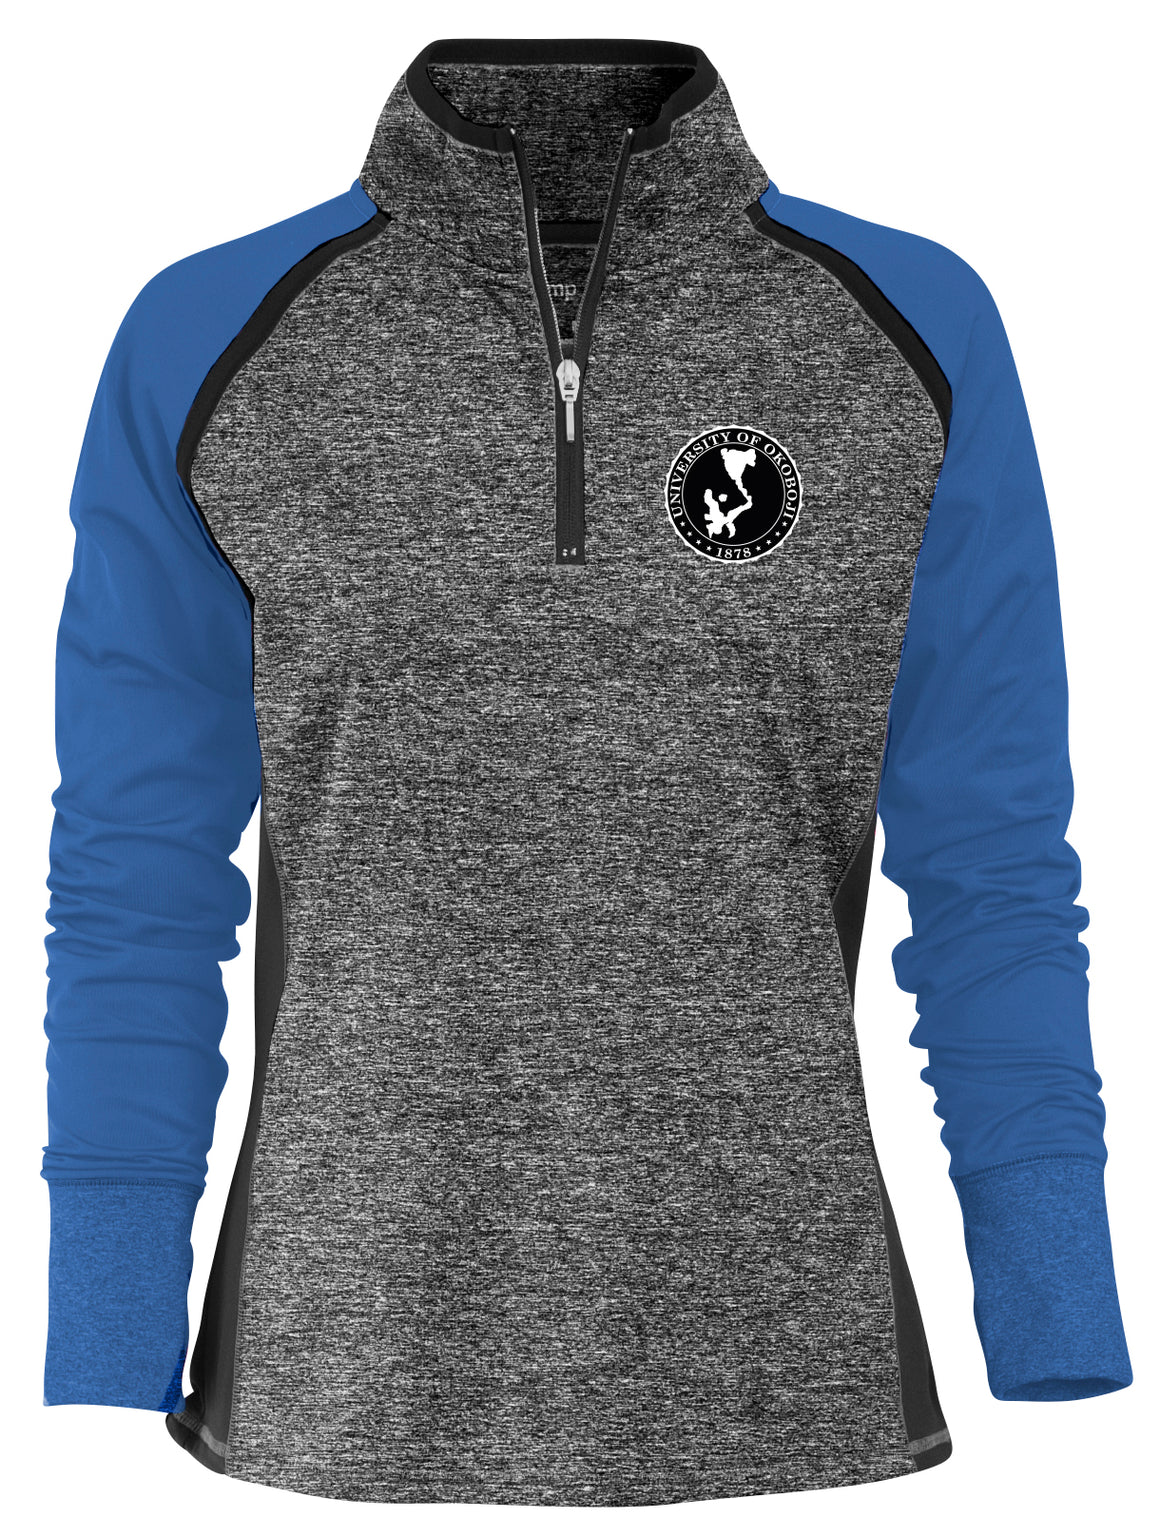 Ladies Two-tone 1/4 Zip - Blue